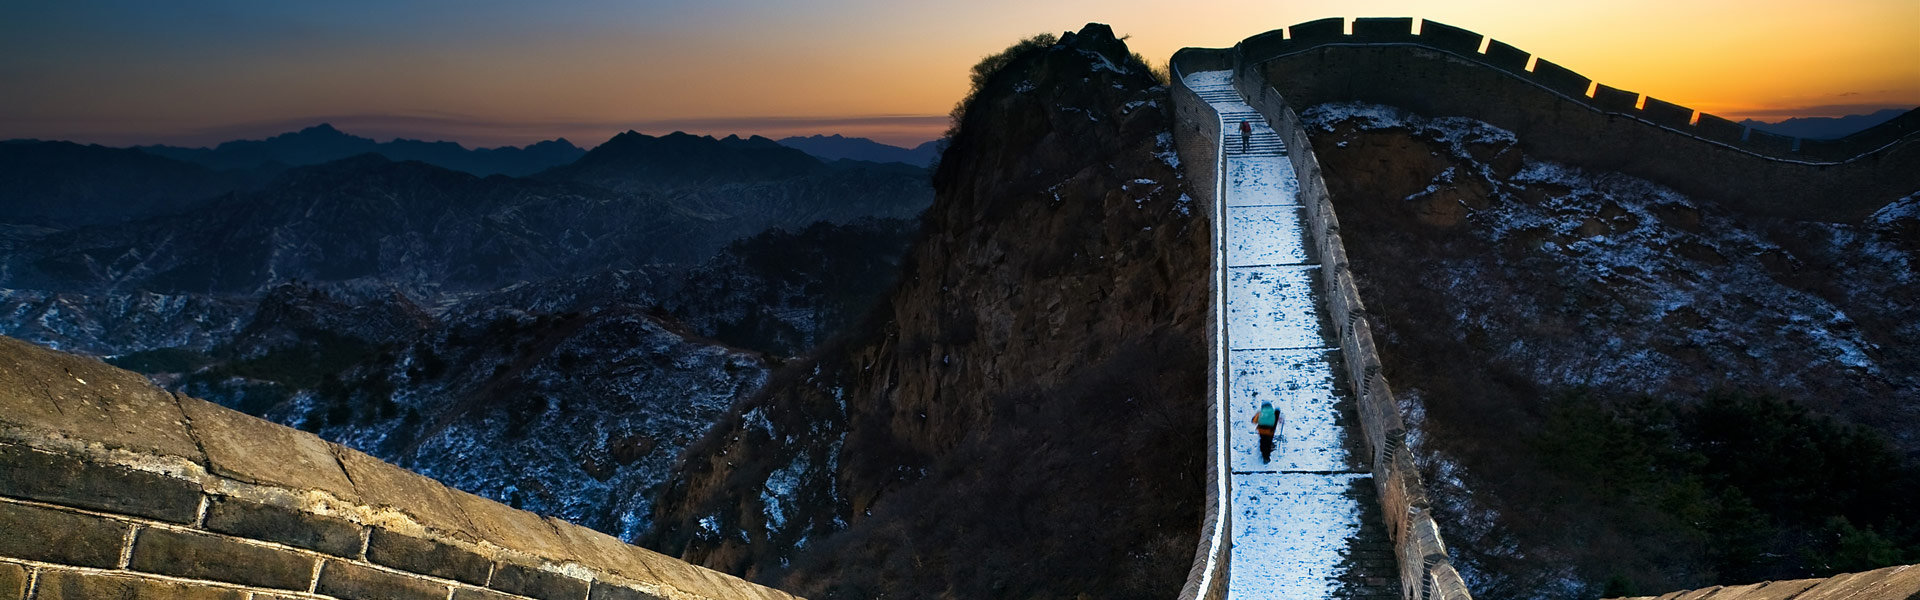 snow on great wall